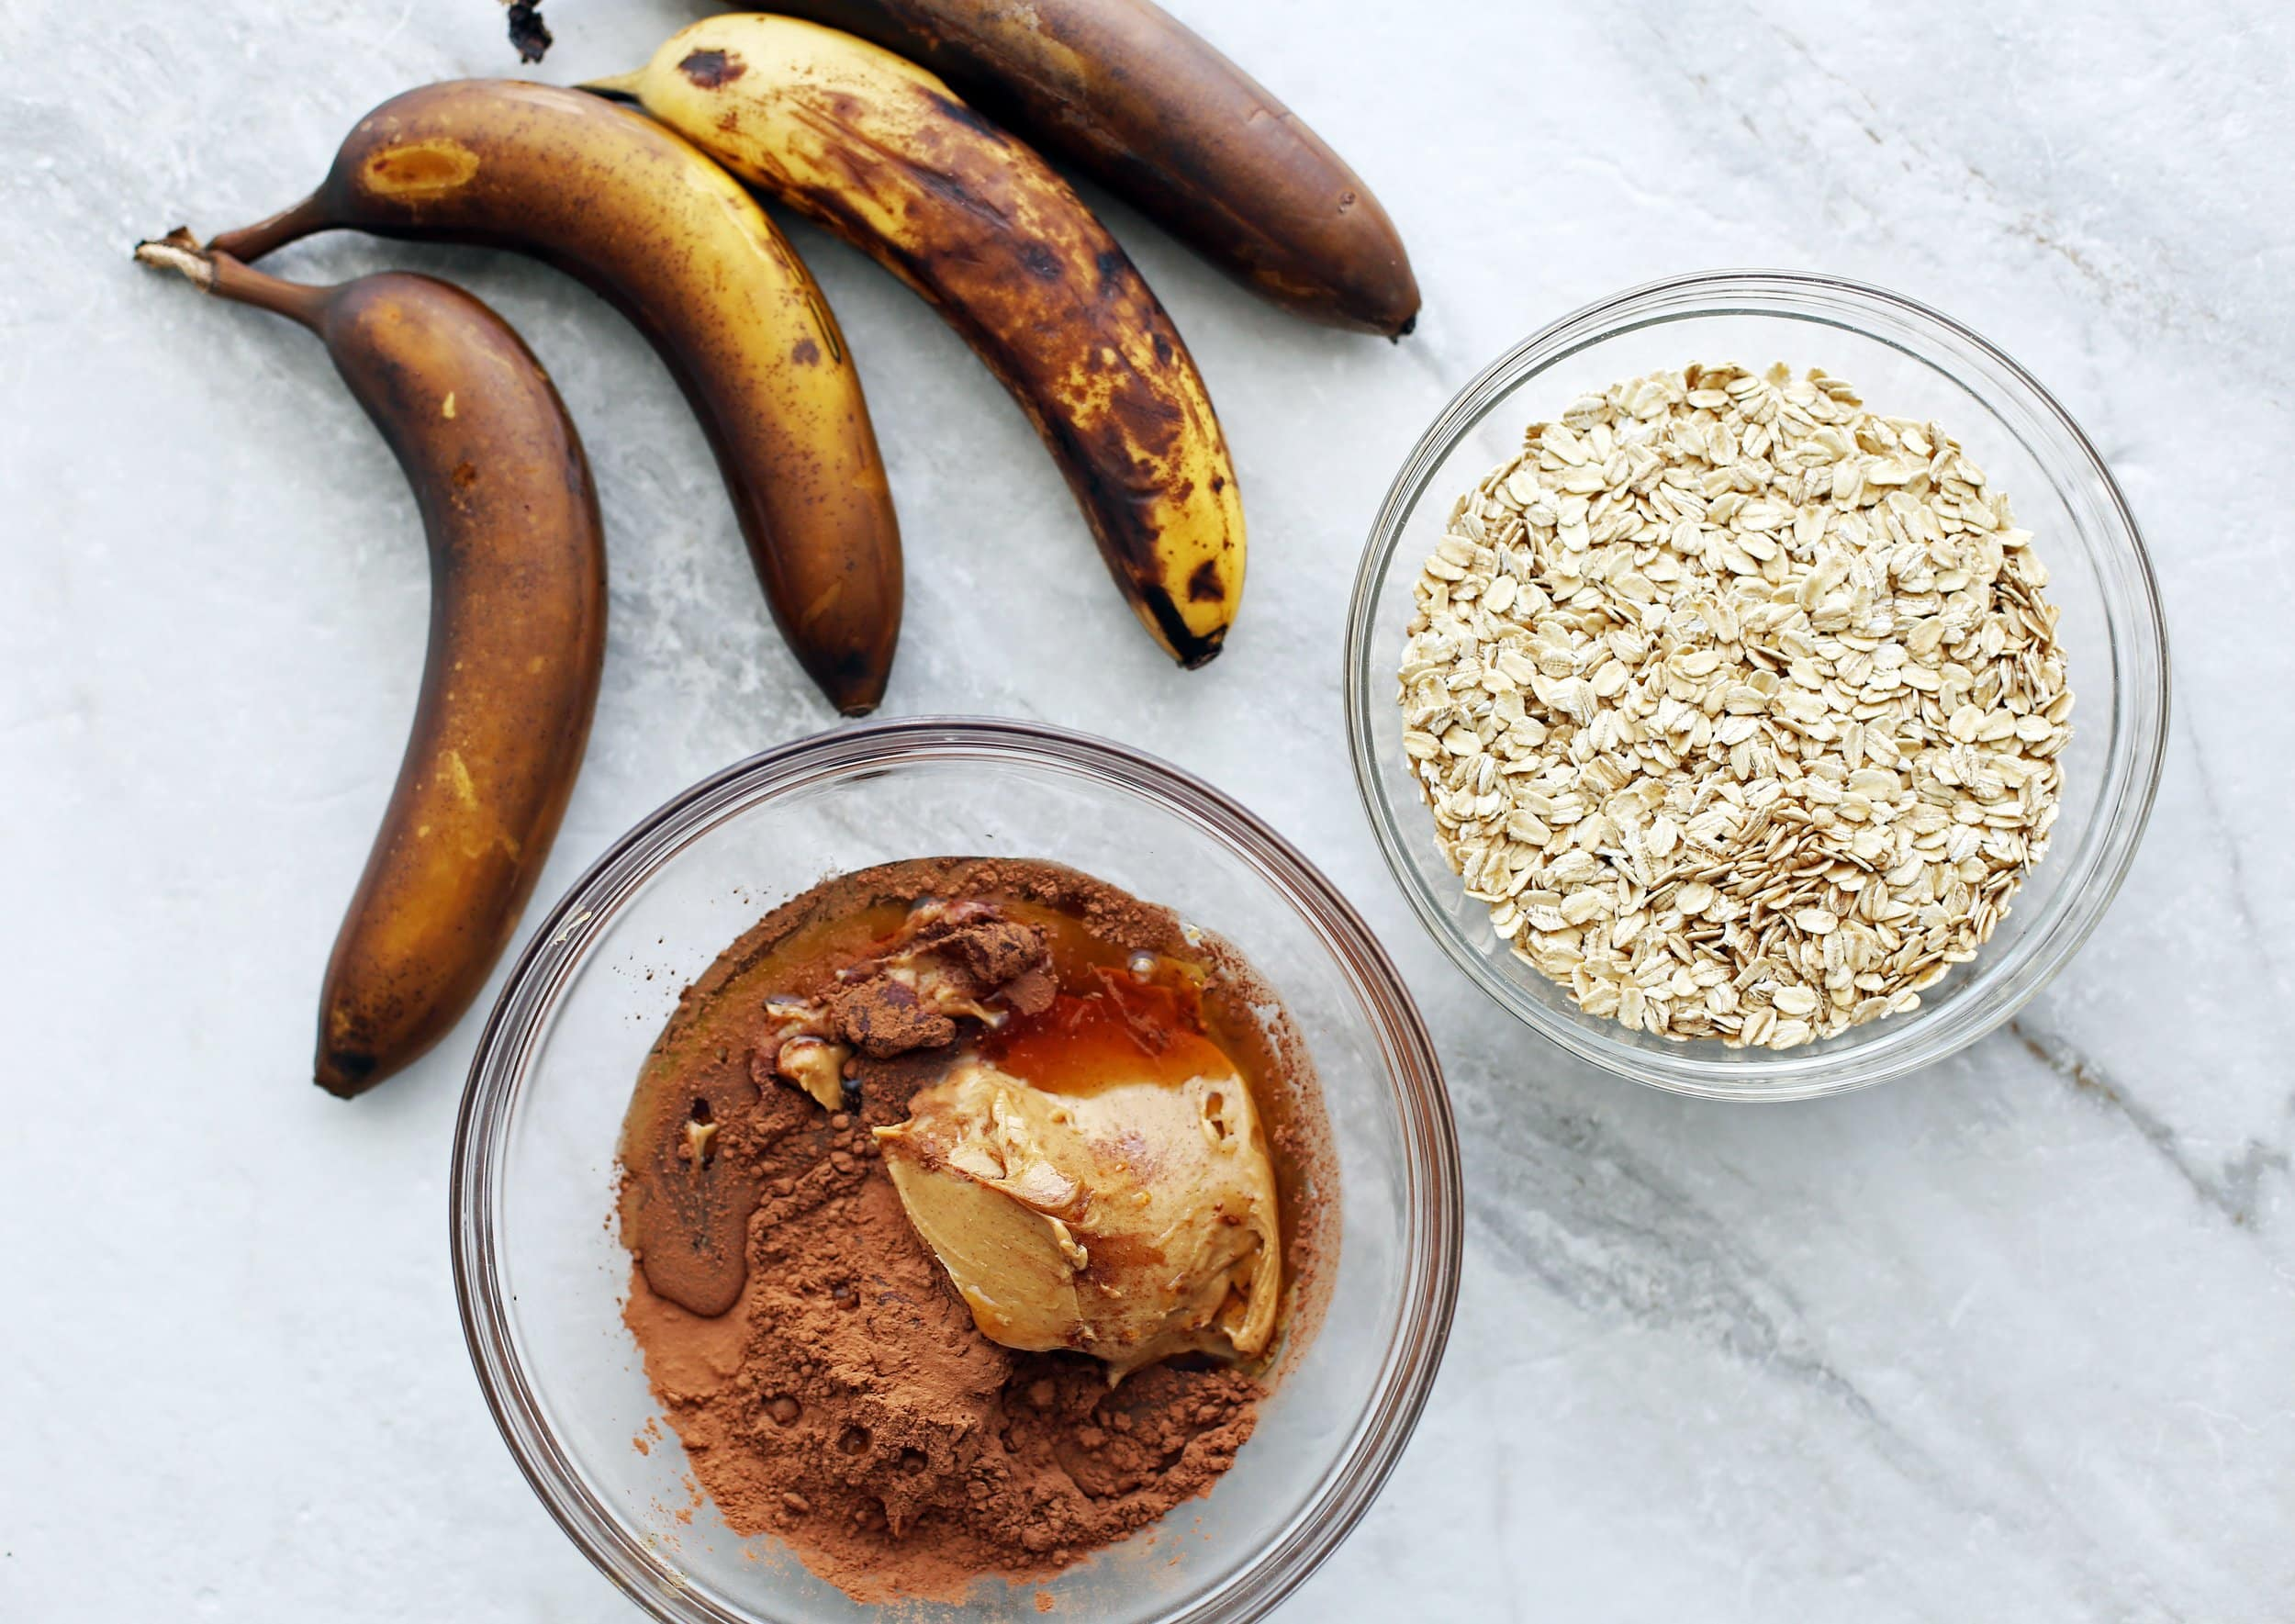 Four ripe banana, a bowl of peanut butter, cocoa powder, and maple syrup, and another bowl with oats.